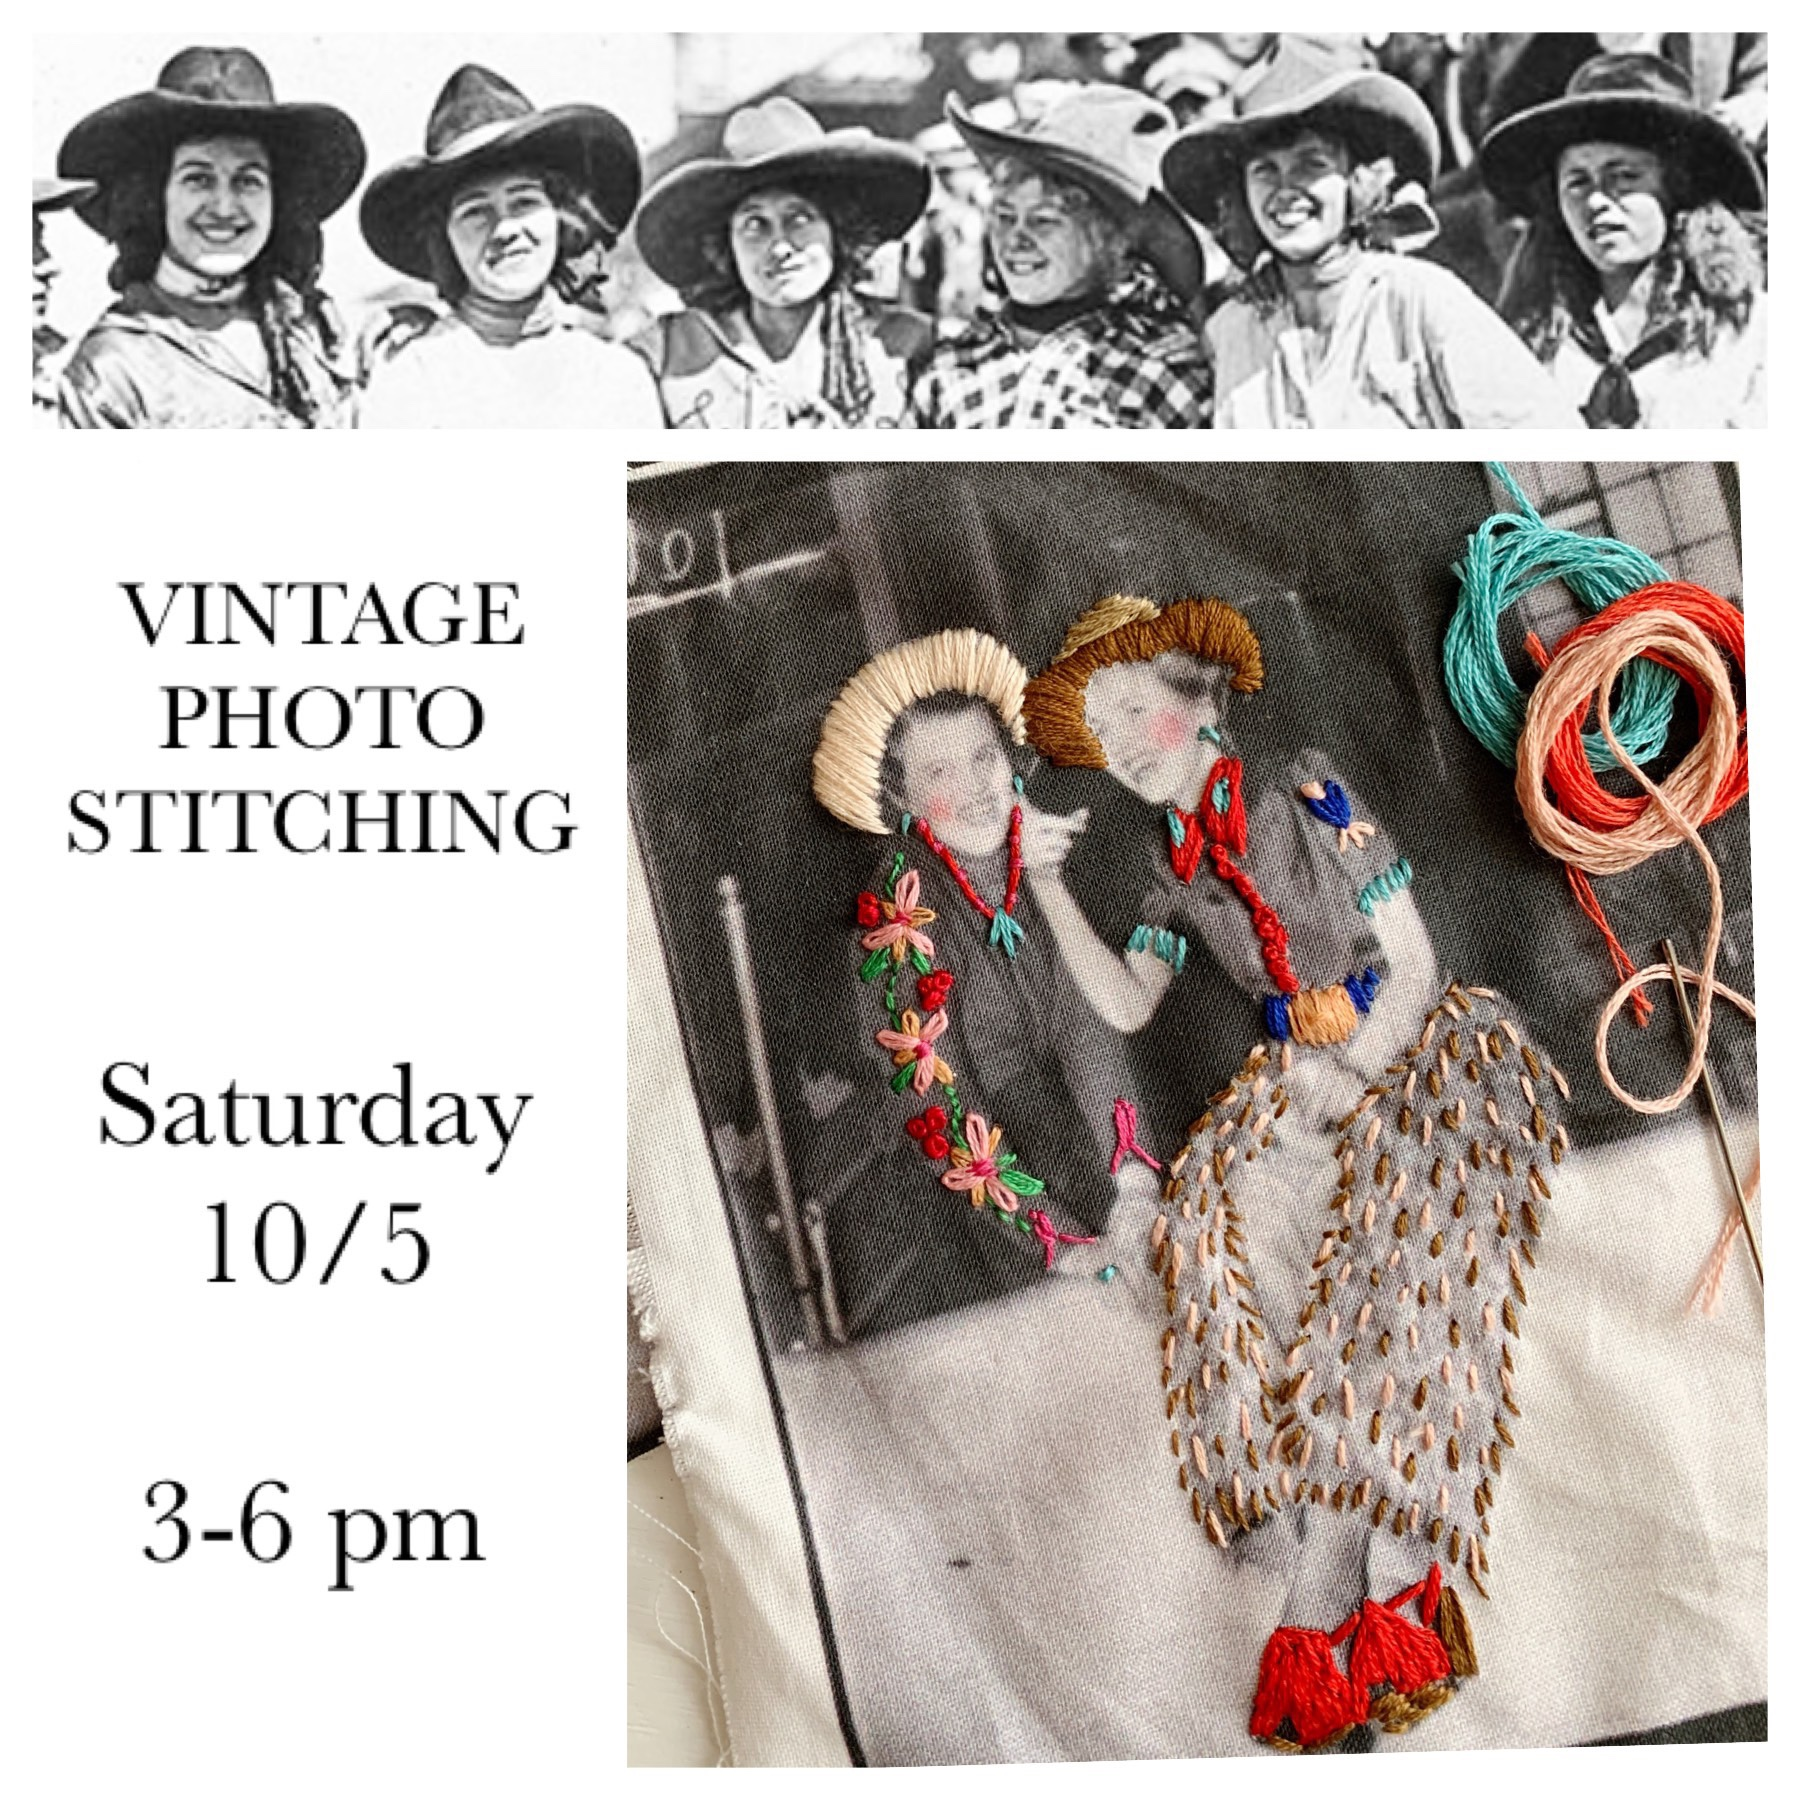 vintage photo stitching$65.00 - all materials included but please bring your own embroidery scissors.we have scoured the earth (well, at least the country) for our favorite vintage cowgirl photos and created a panel of fabric for you to embellish and stitch! we will teach you various stitching techniques and how to add these pieces into your stitch book. (stitch book kit sold separately if you didn't take the stitch book class!)